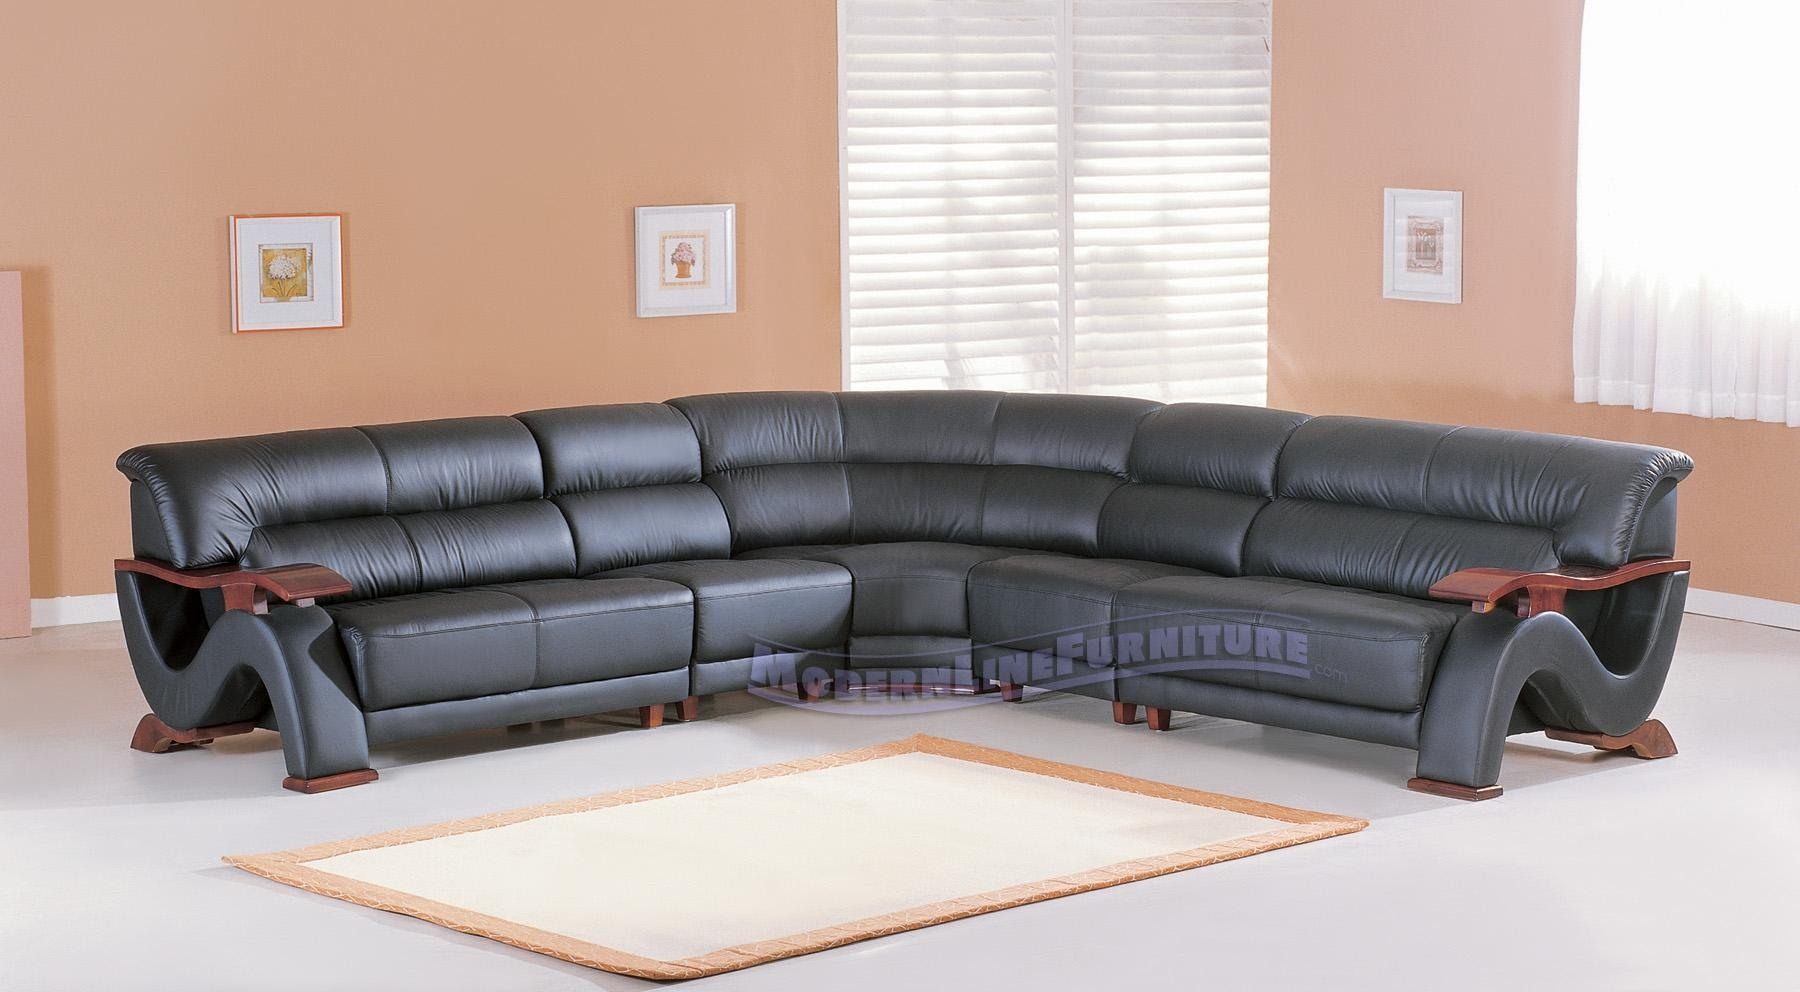 Modern Line Furniture – Commercial Furniture – Custom Made Intended For Contemporary Black Leather Sofas (View 9 of 20)